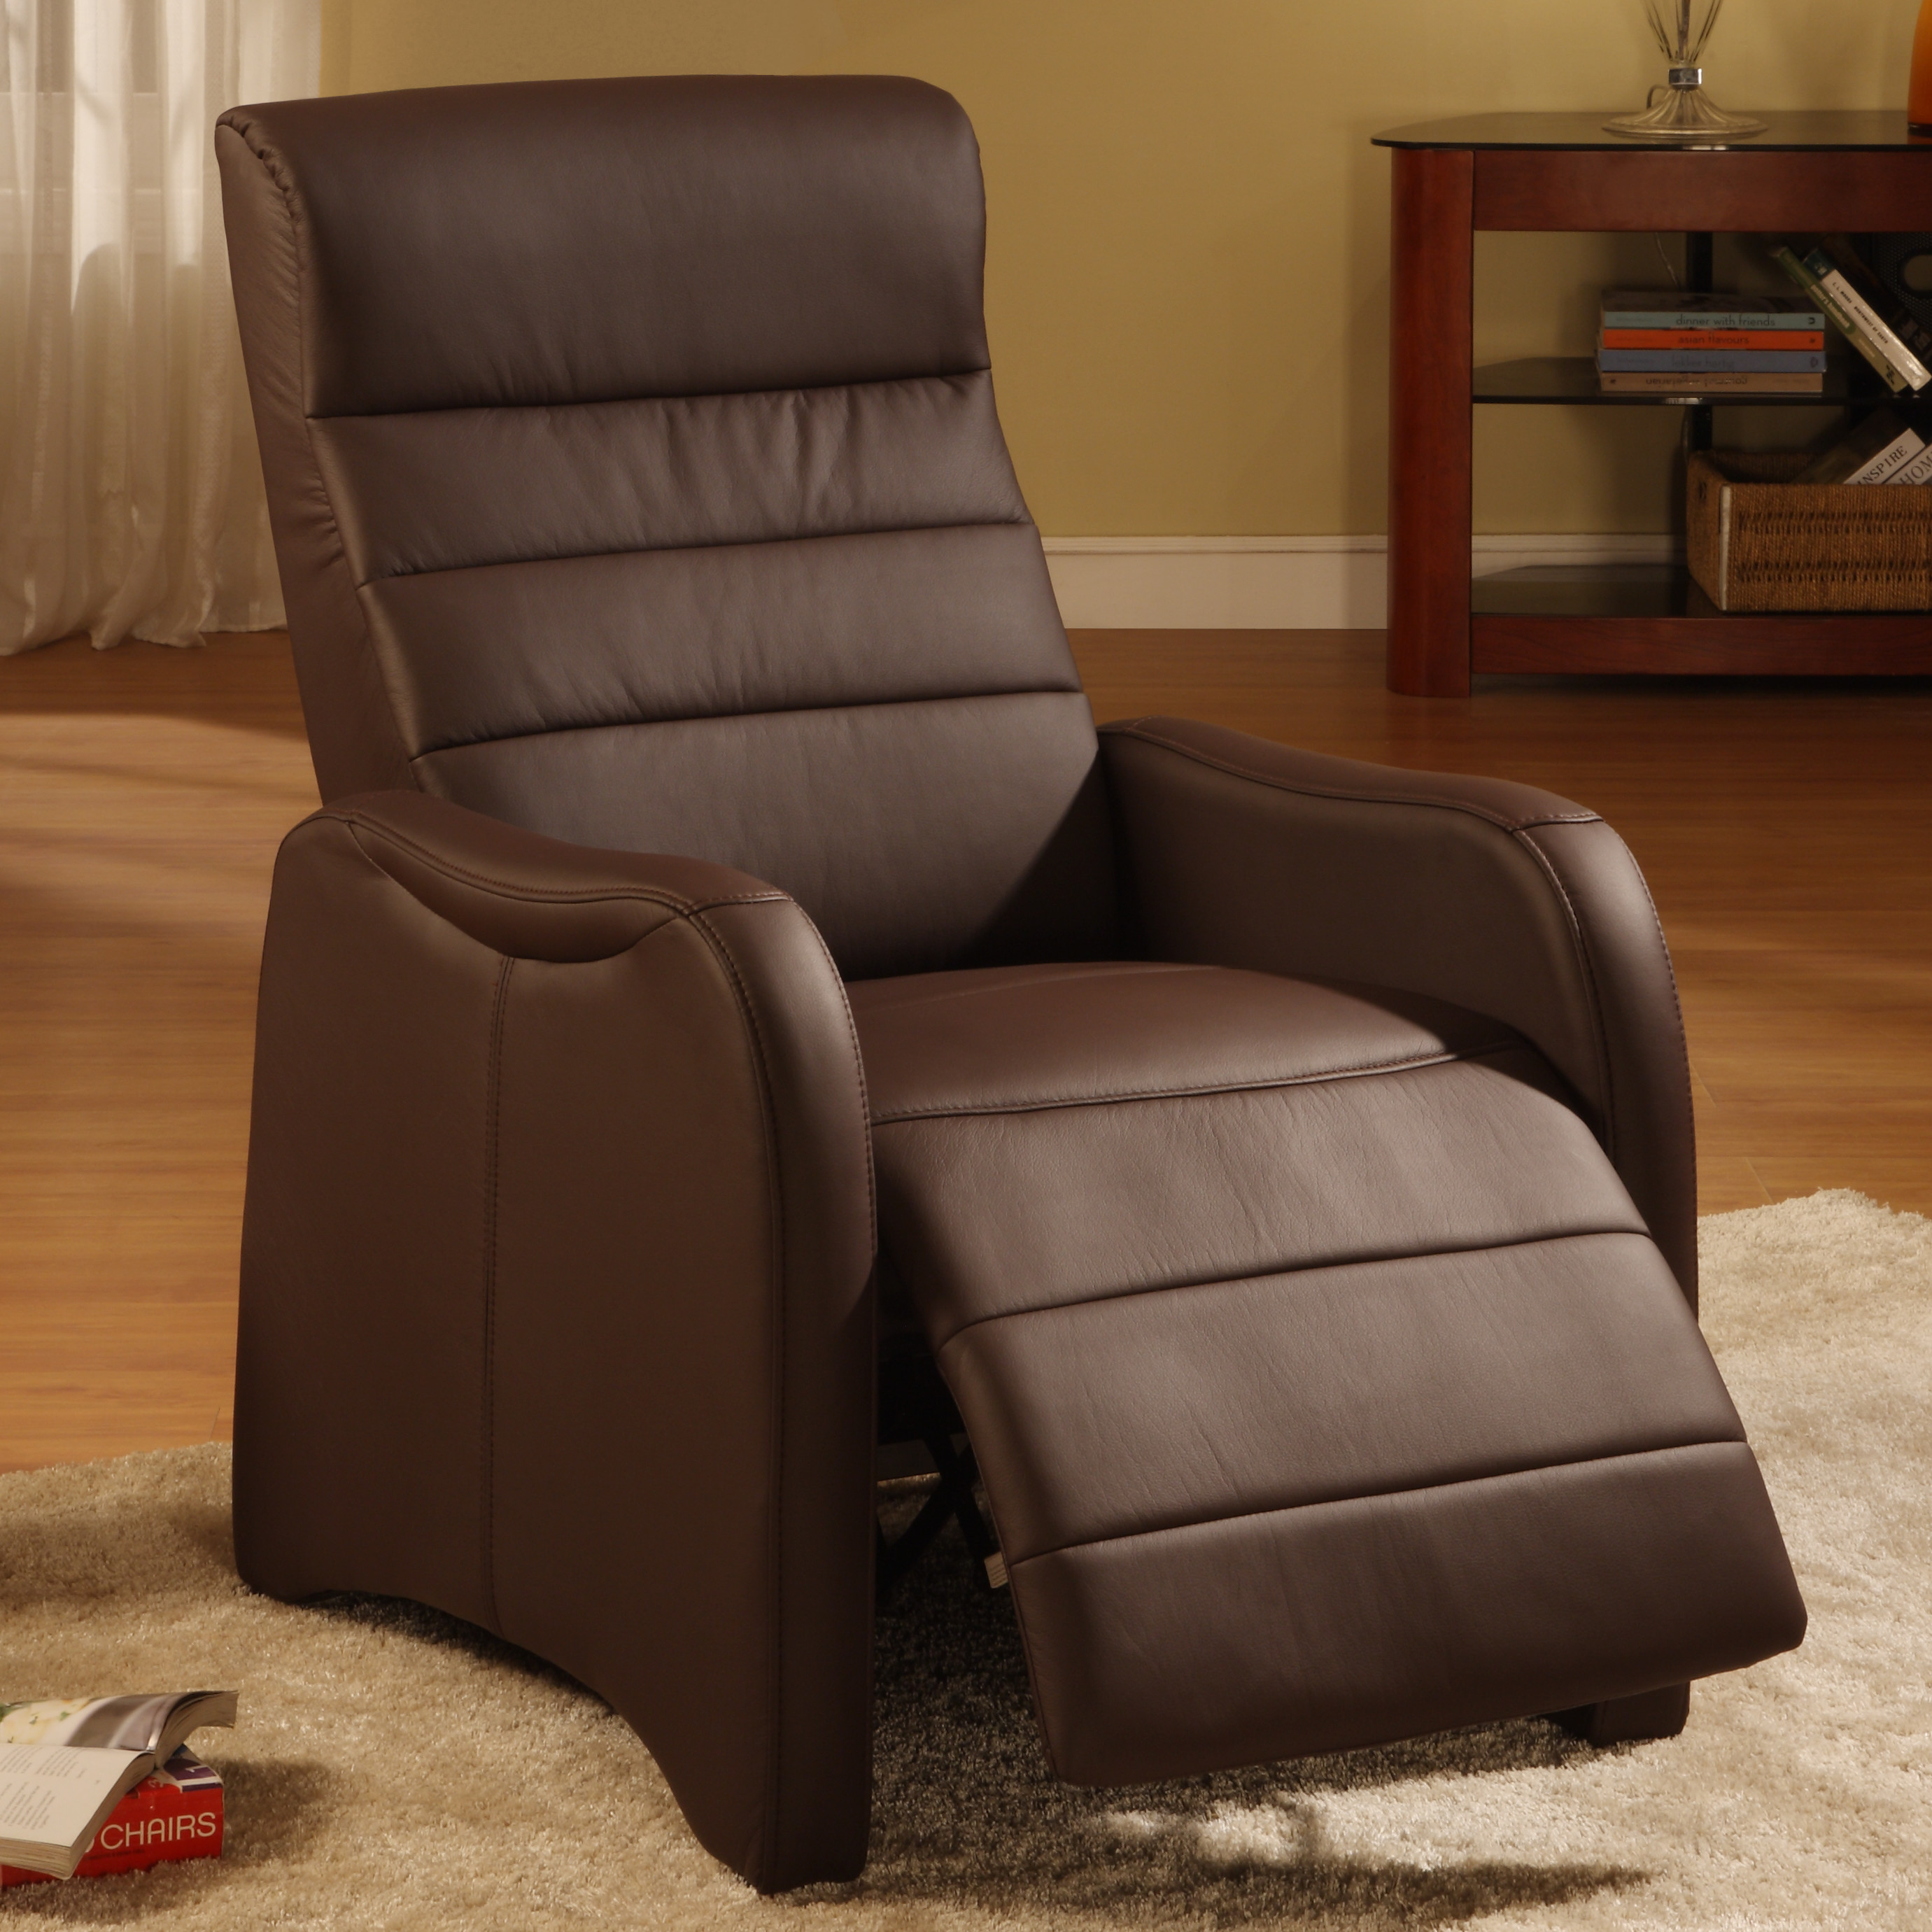 Bedroom Recliner Chair Module 2 Small Recliners For Ideas Lounge Chairs Wing Spaces Chaise Stylish Fun Apppie Org